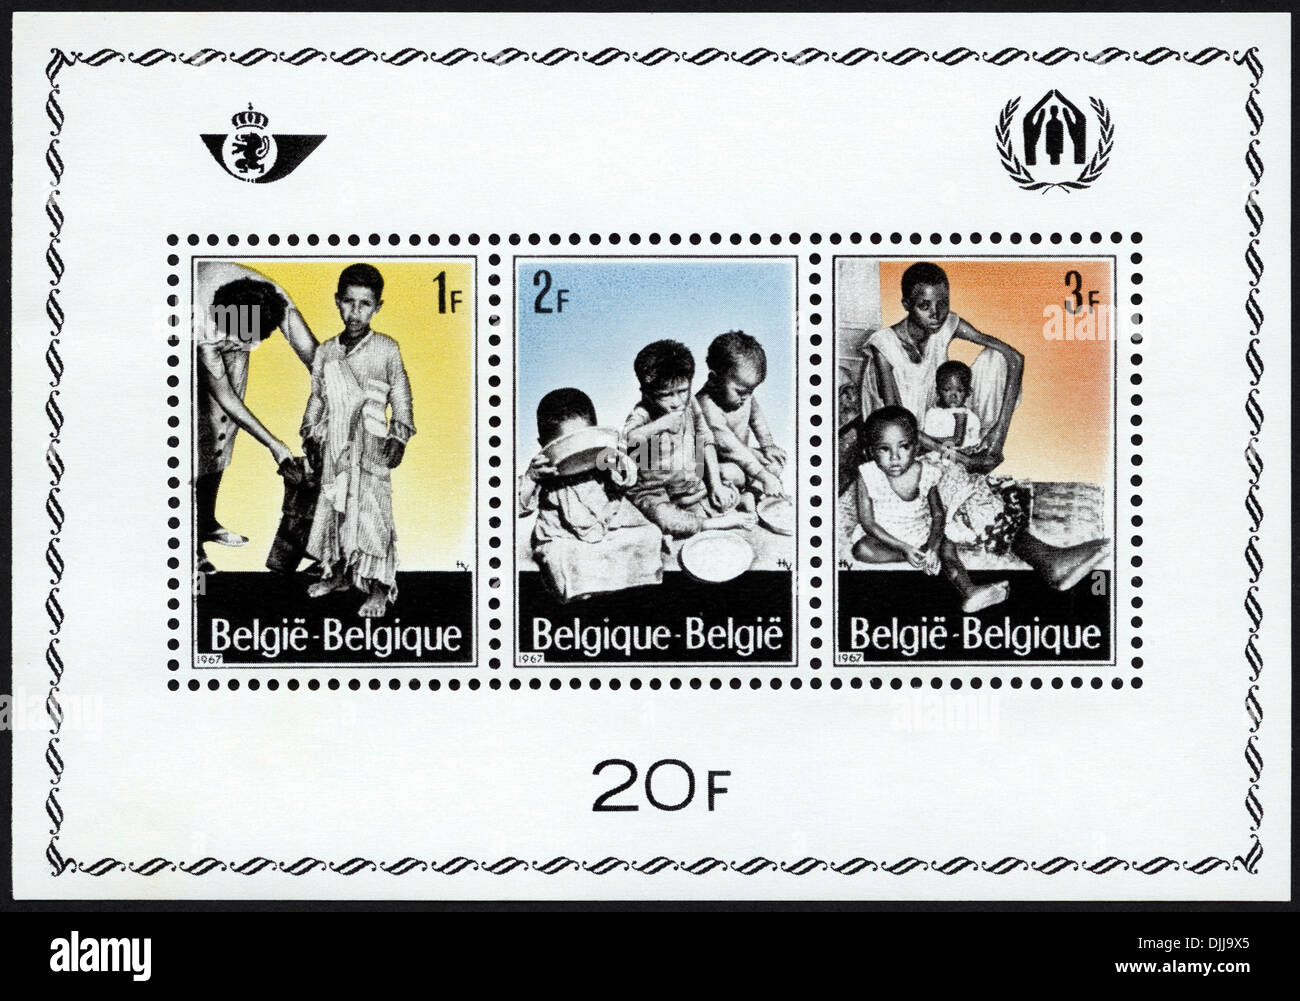 postage stamp Belgium featuring Refugees 1F 2F 3F 20F issued 1967 - Stock Image